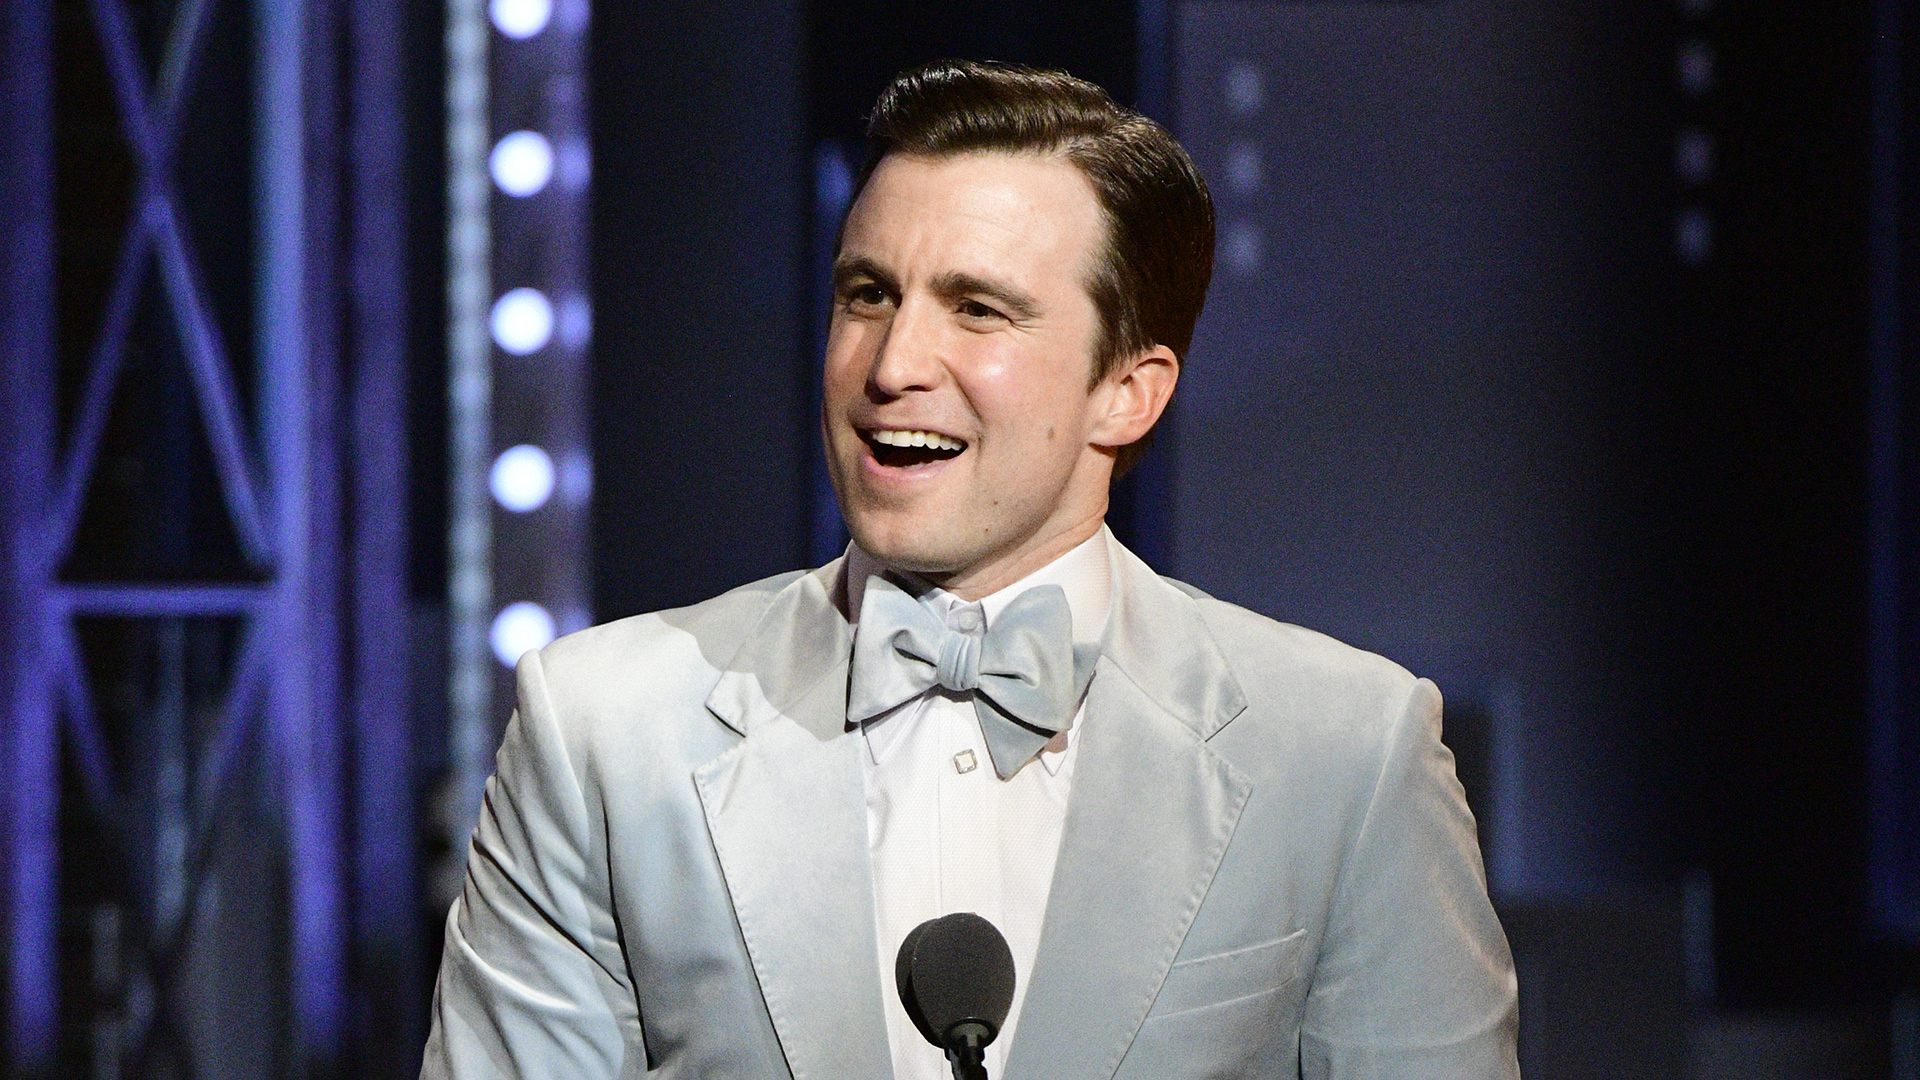 Gavin Creel wins the 71st Annual Tony Award for Best Performance by an Actor in a Featured Role in a Musical